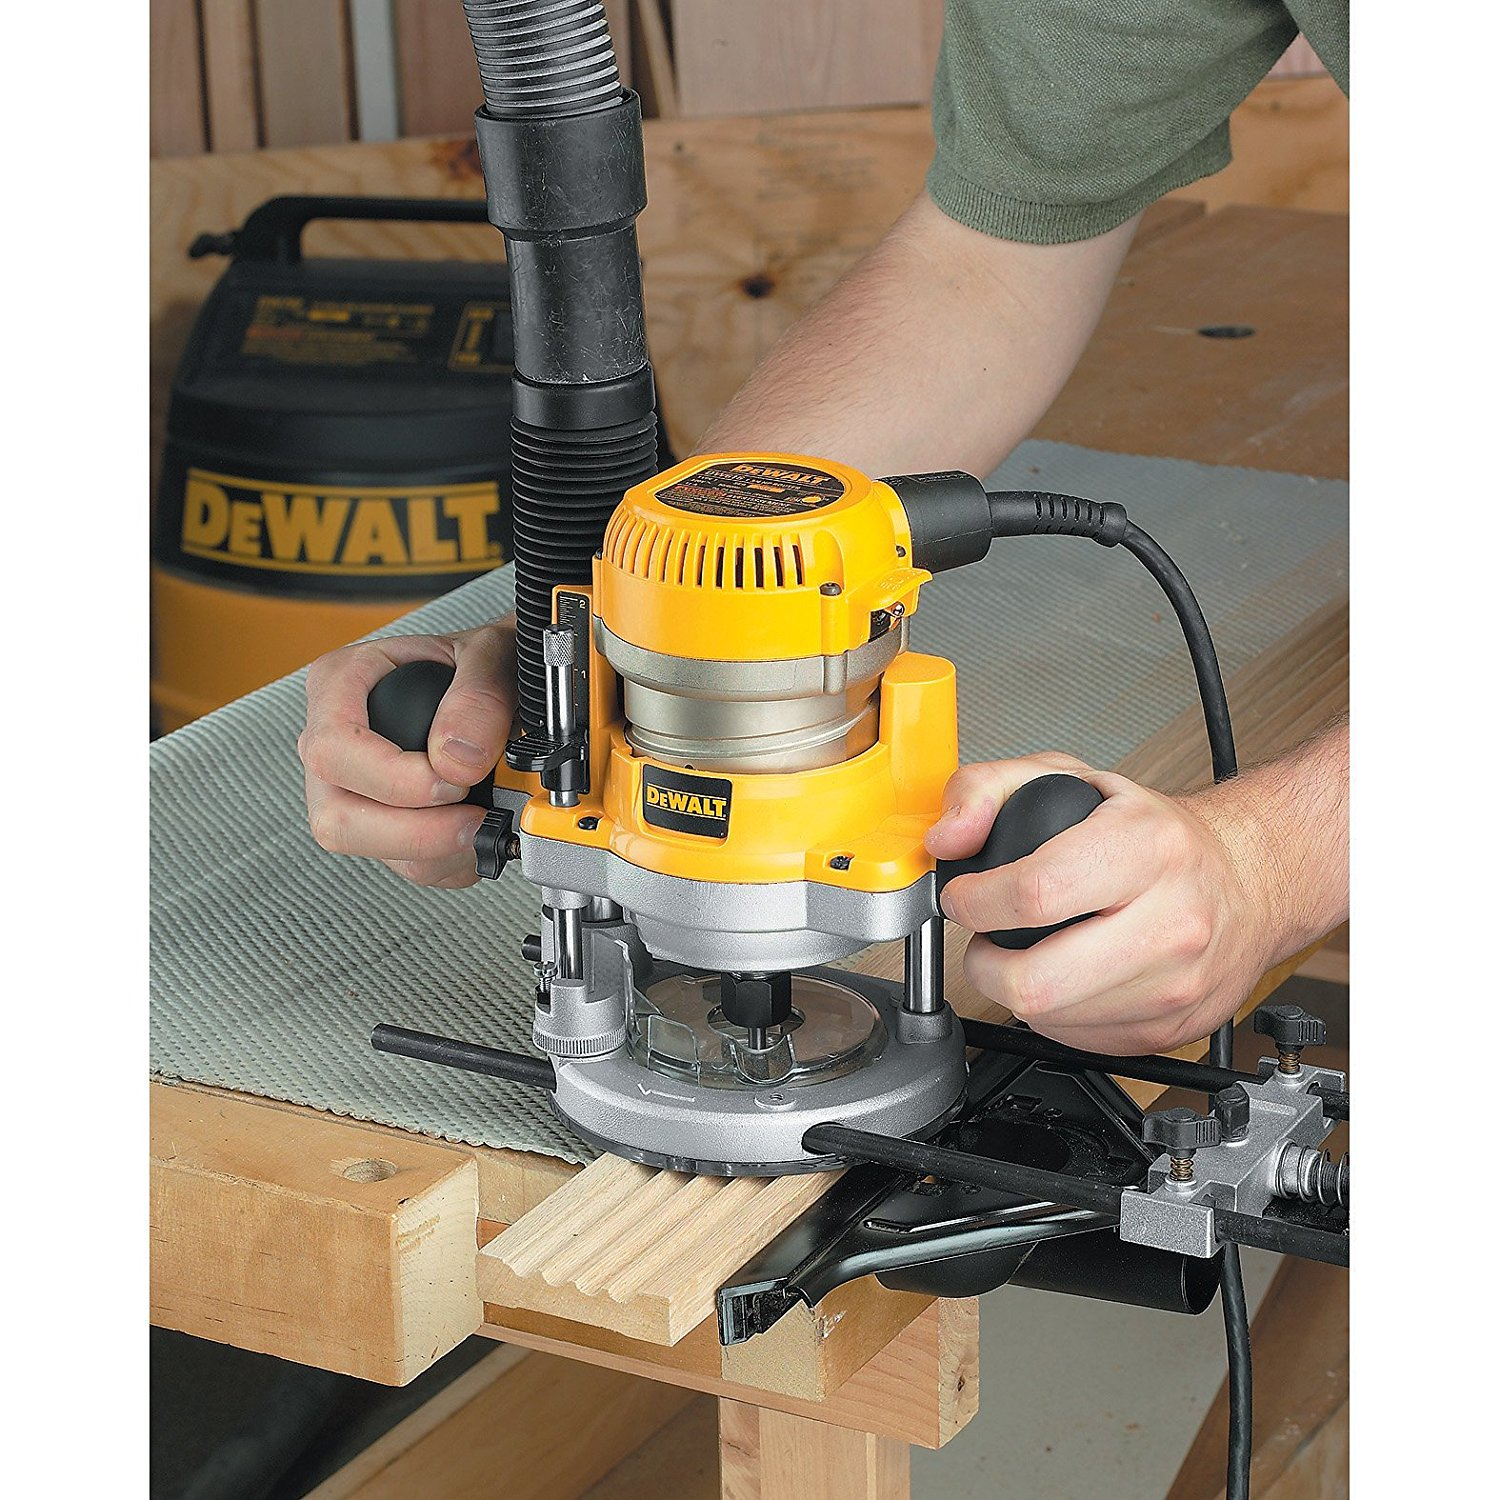 DEWALT DW6182 drill press